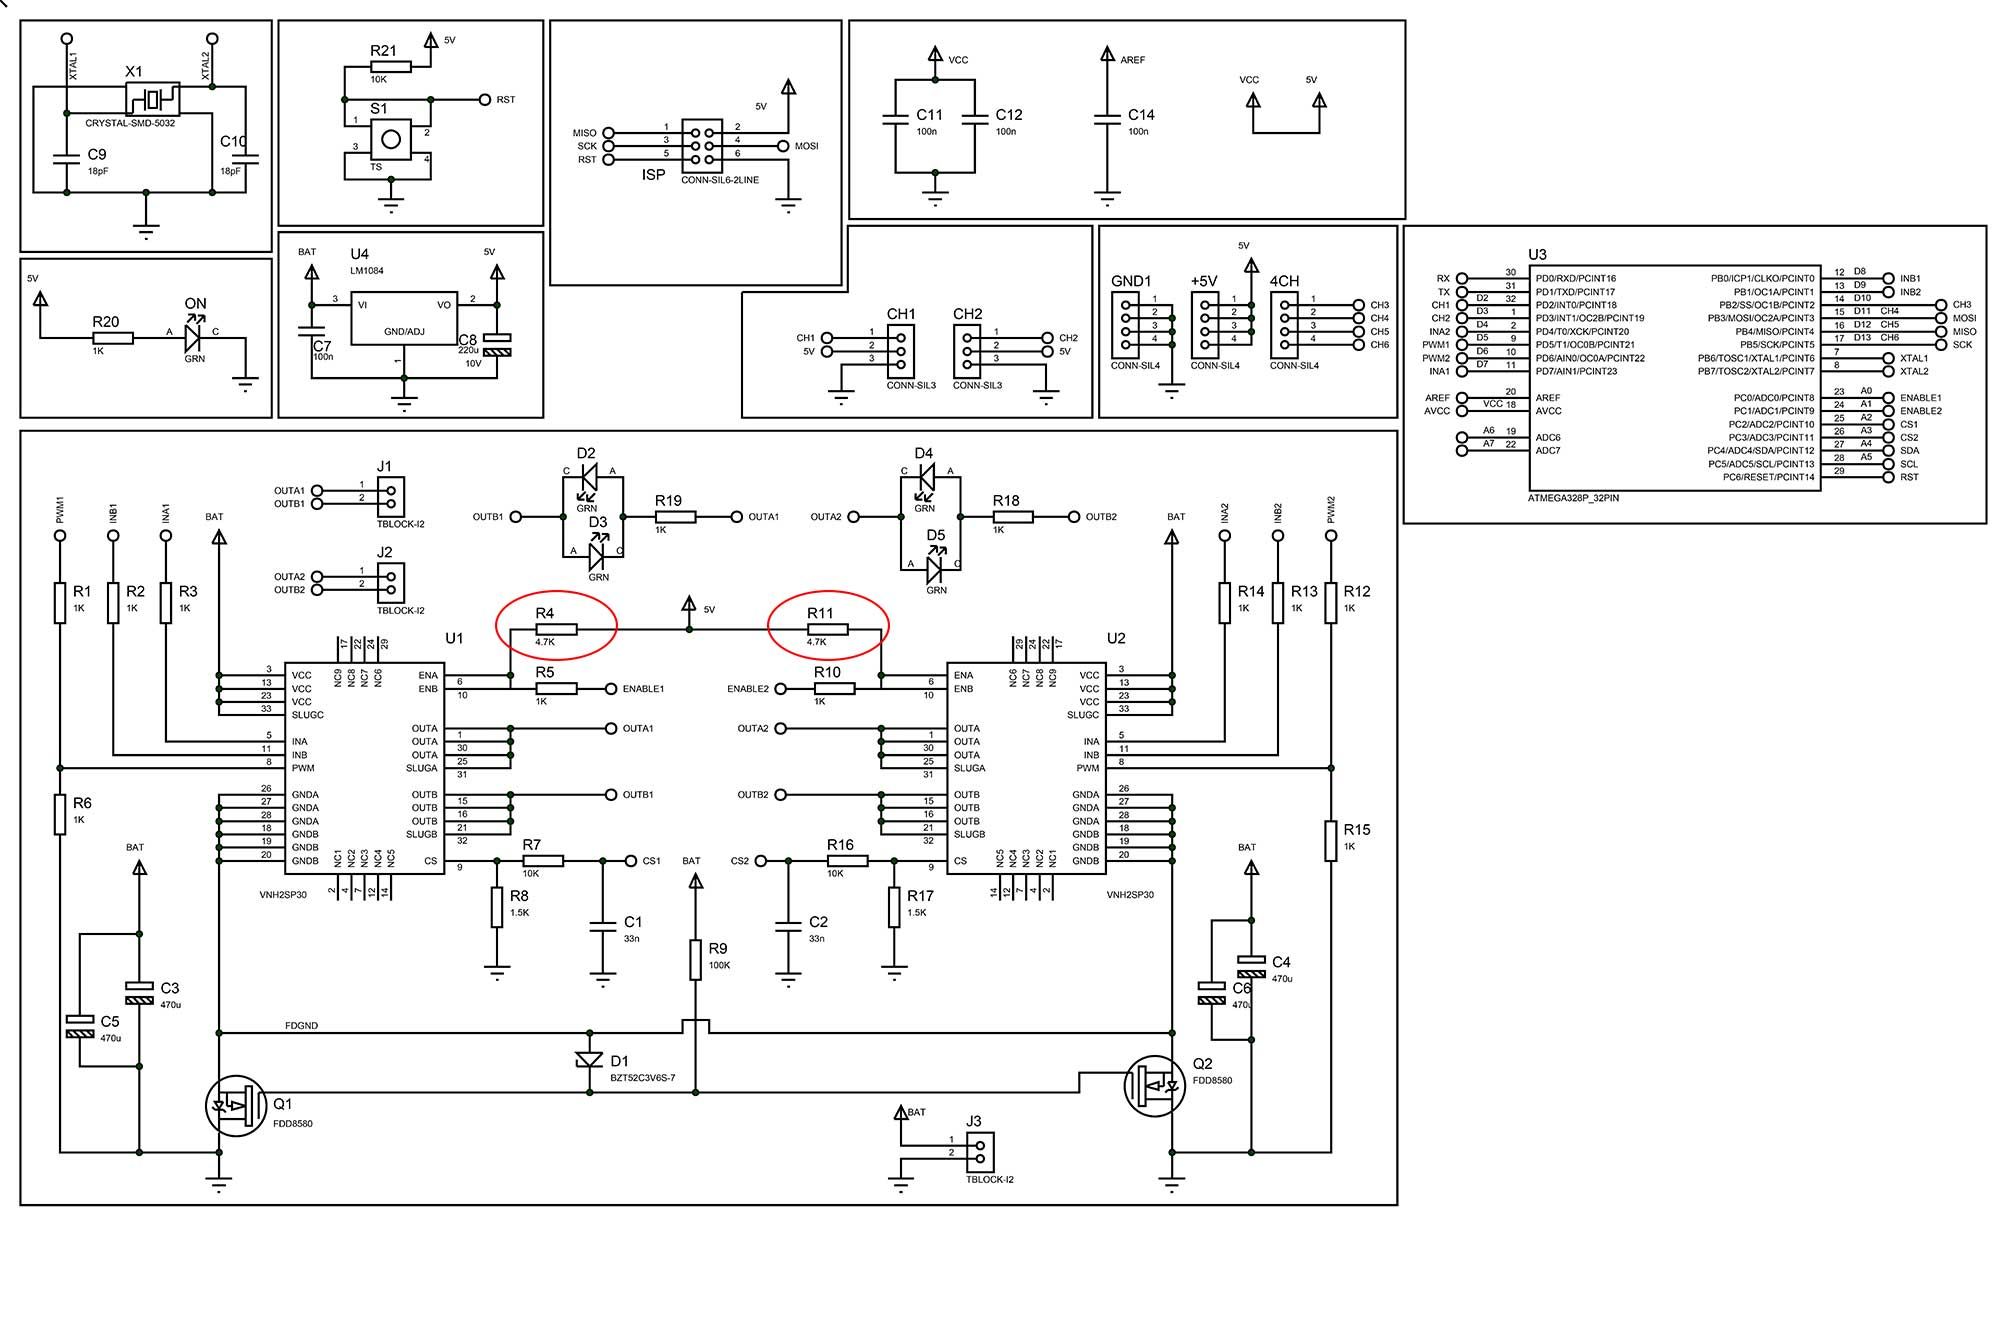 Vhn2sp30 Motor Control Works Only When Controller Is